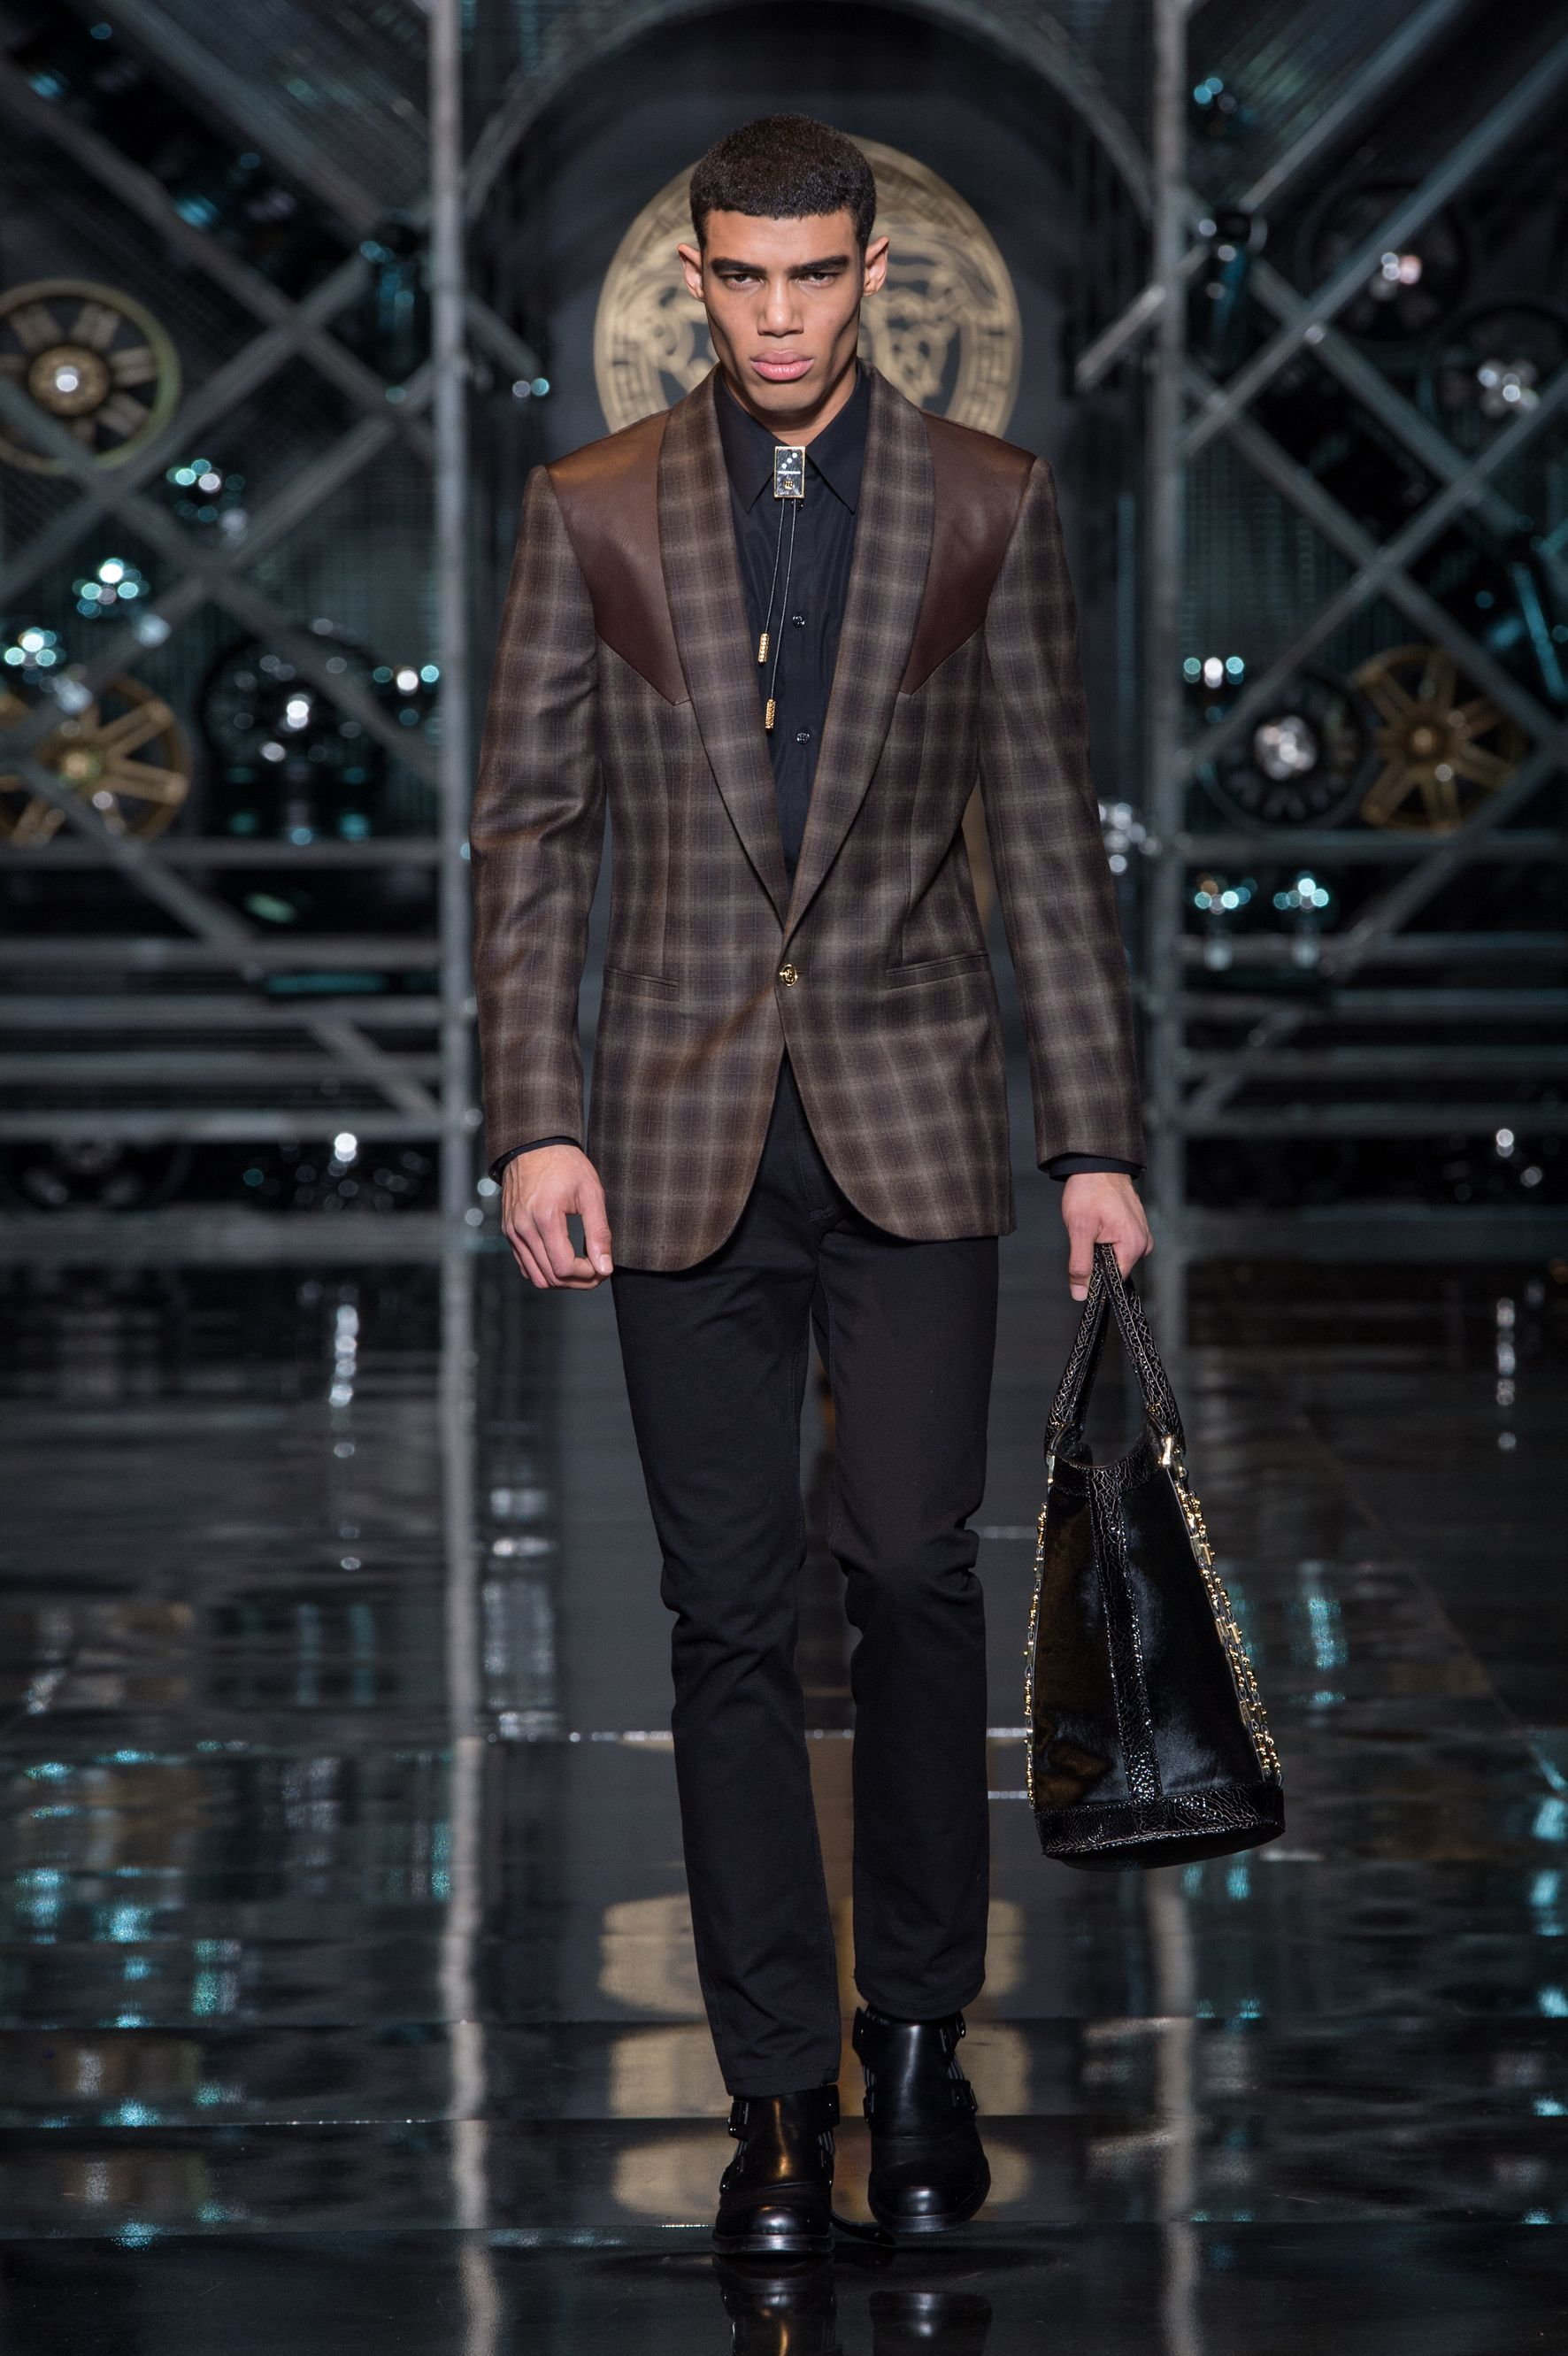 Men's fashion and accessories - FW 2014 - Fashion Show Collection - Versace 2014